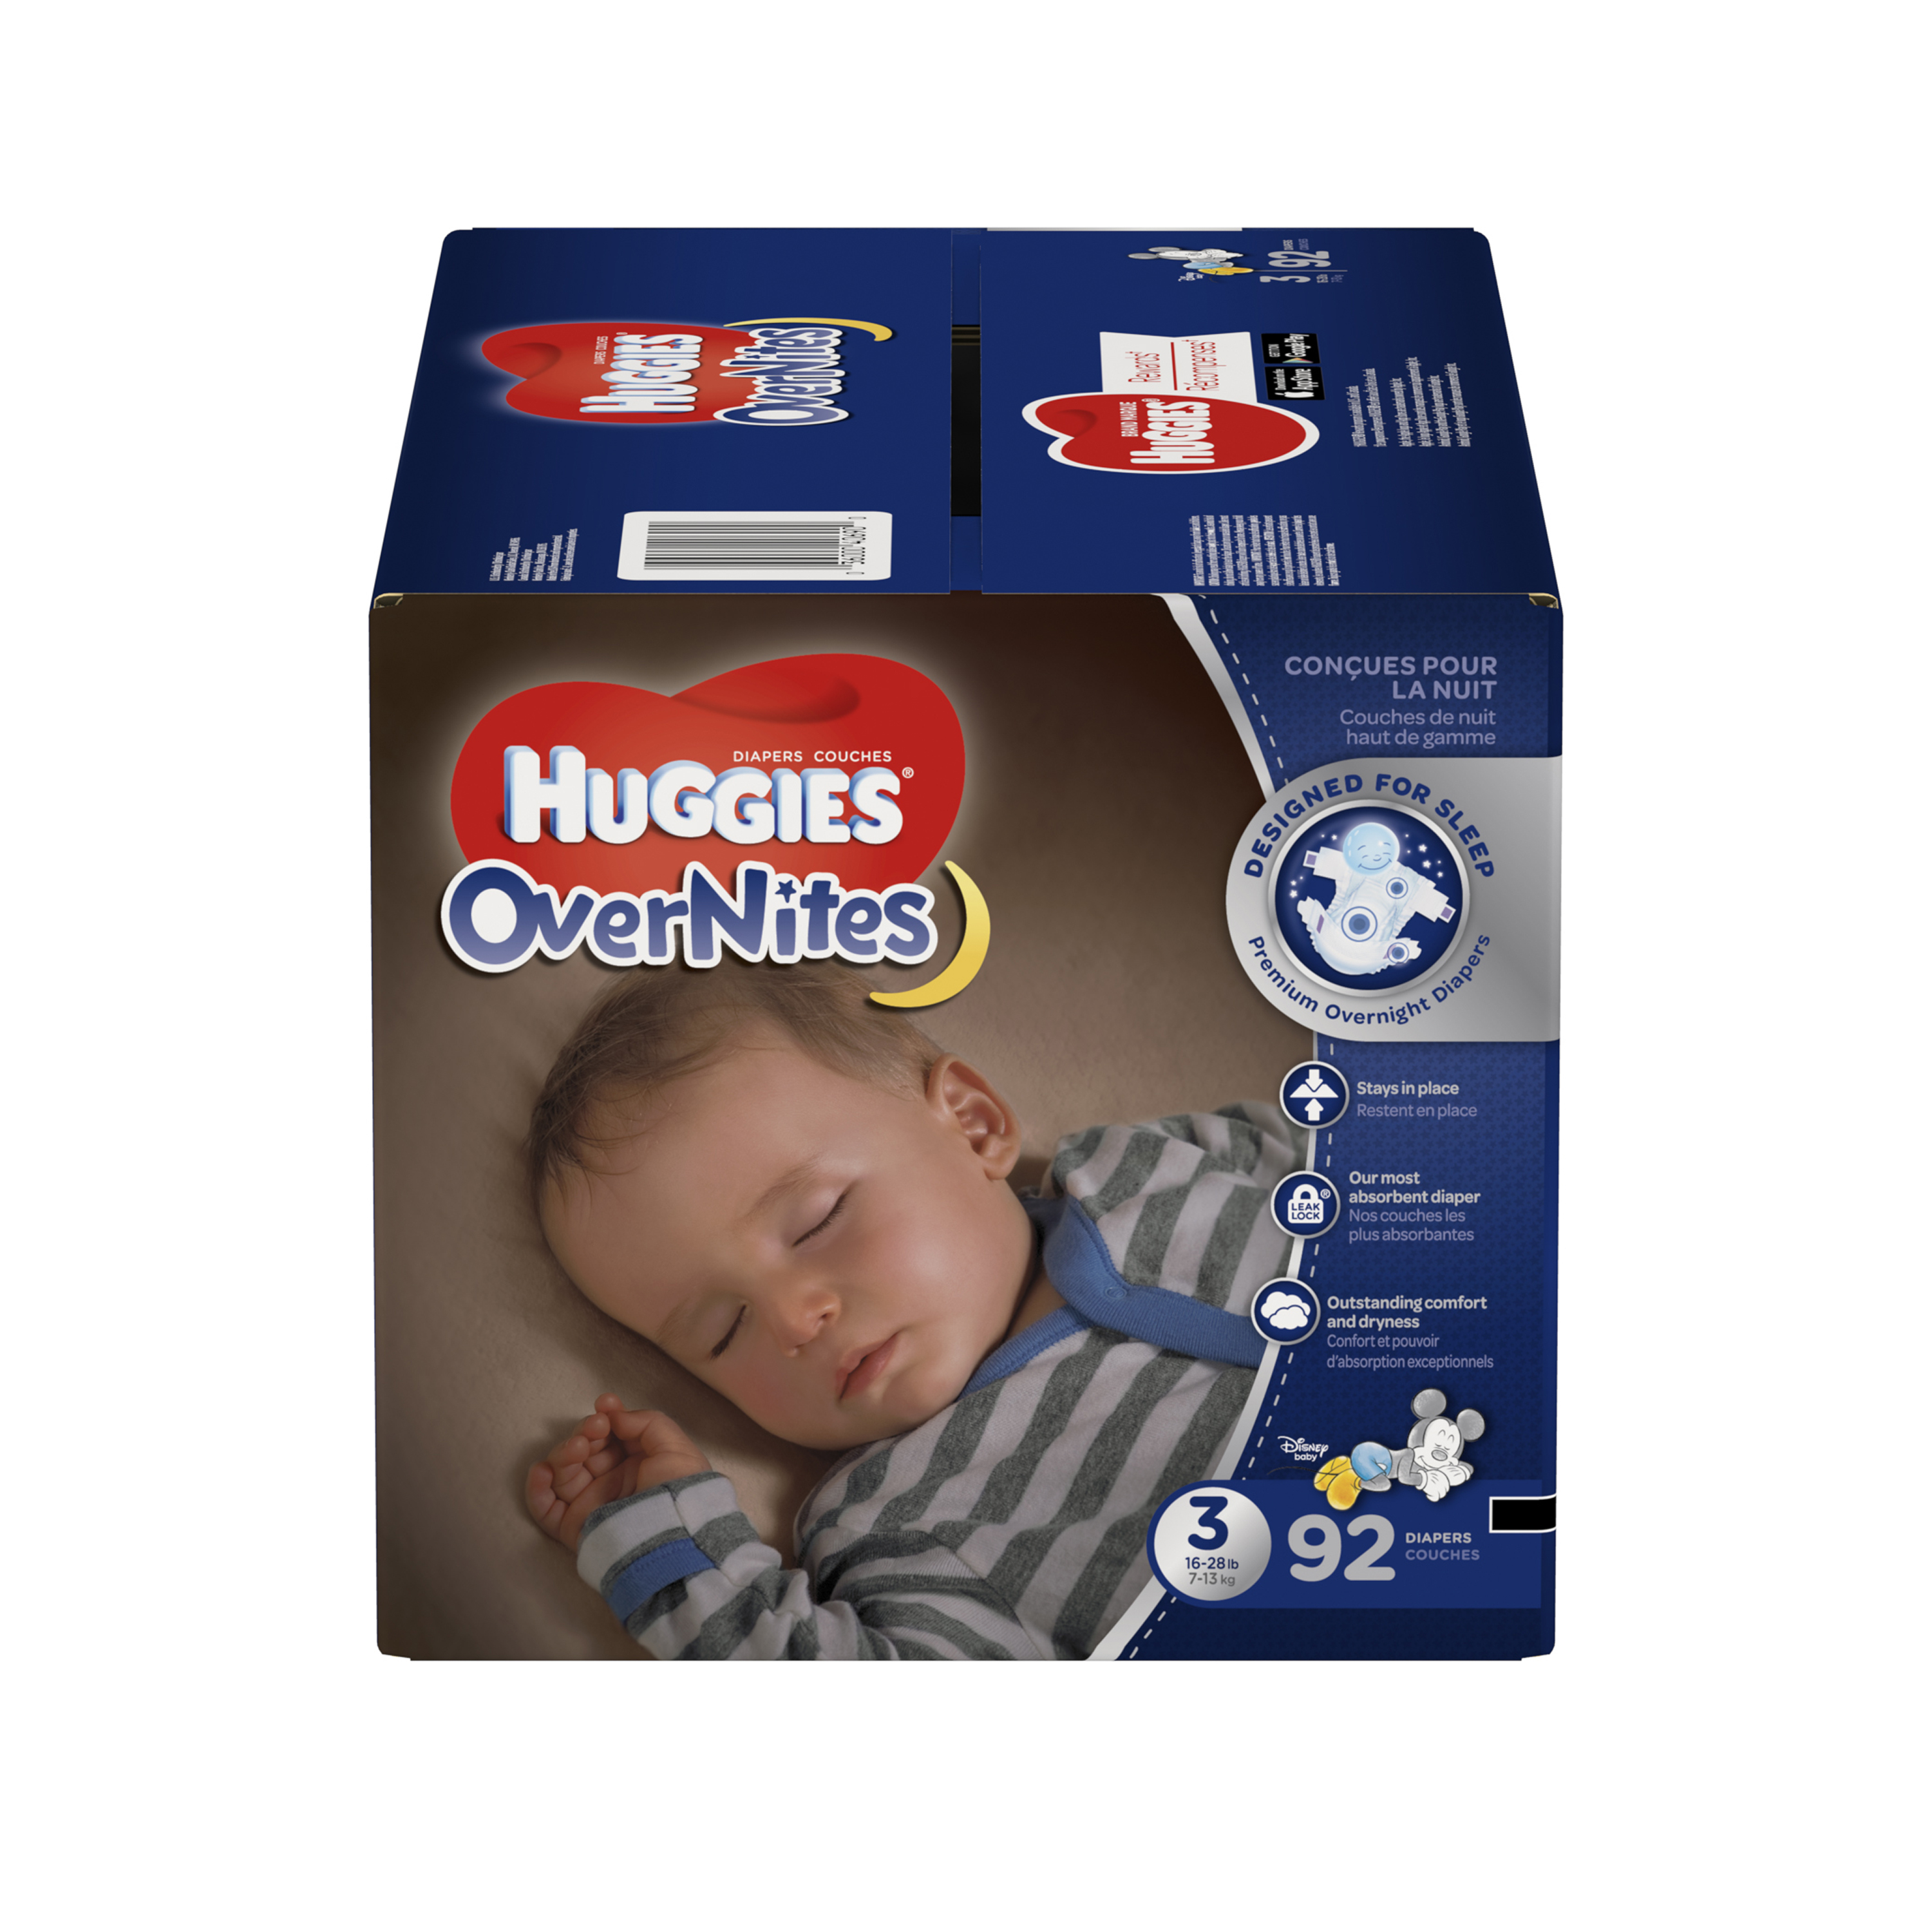 HUGGIES OverNites Diapers (Choose Size and Count)